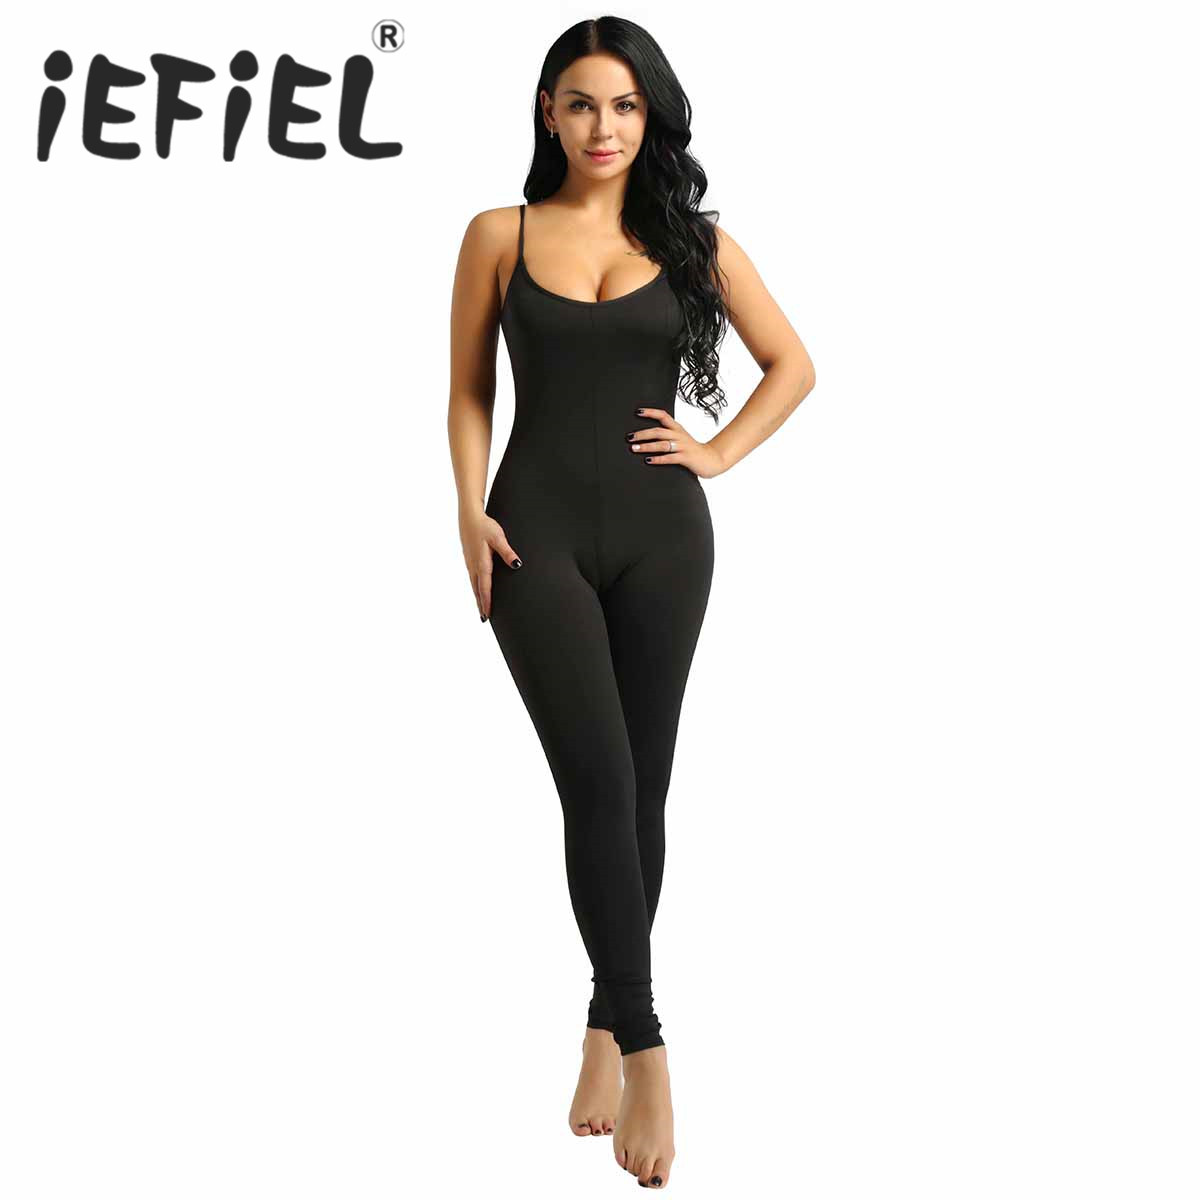 Women Adults Girls Spaghetti Strapped Footless Stretchy Solid Tank Unitard Yoga Dance Leotard Gymnastics Bodysuit Jumpsuit